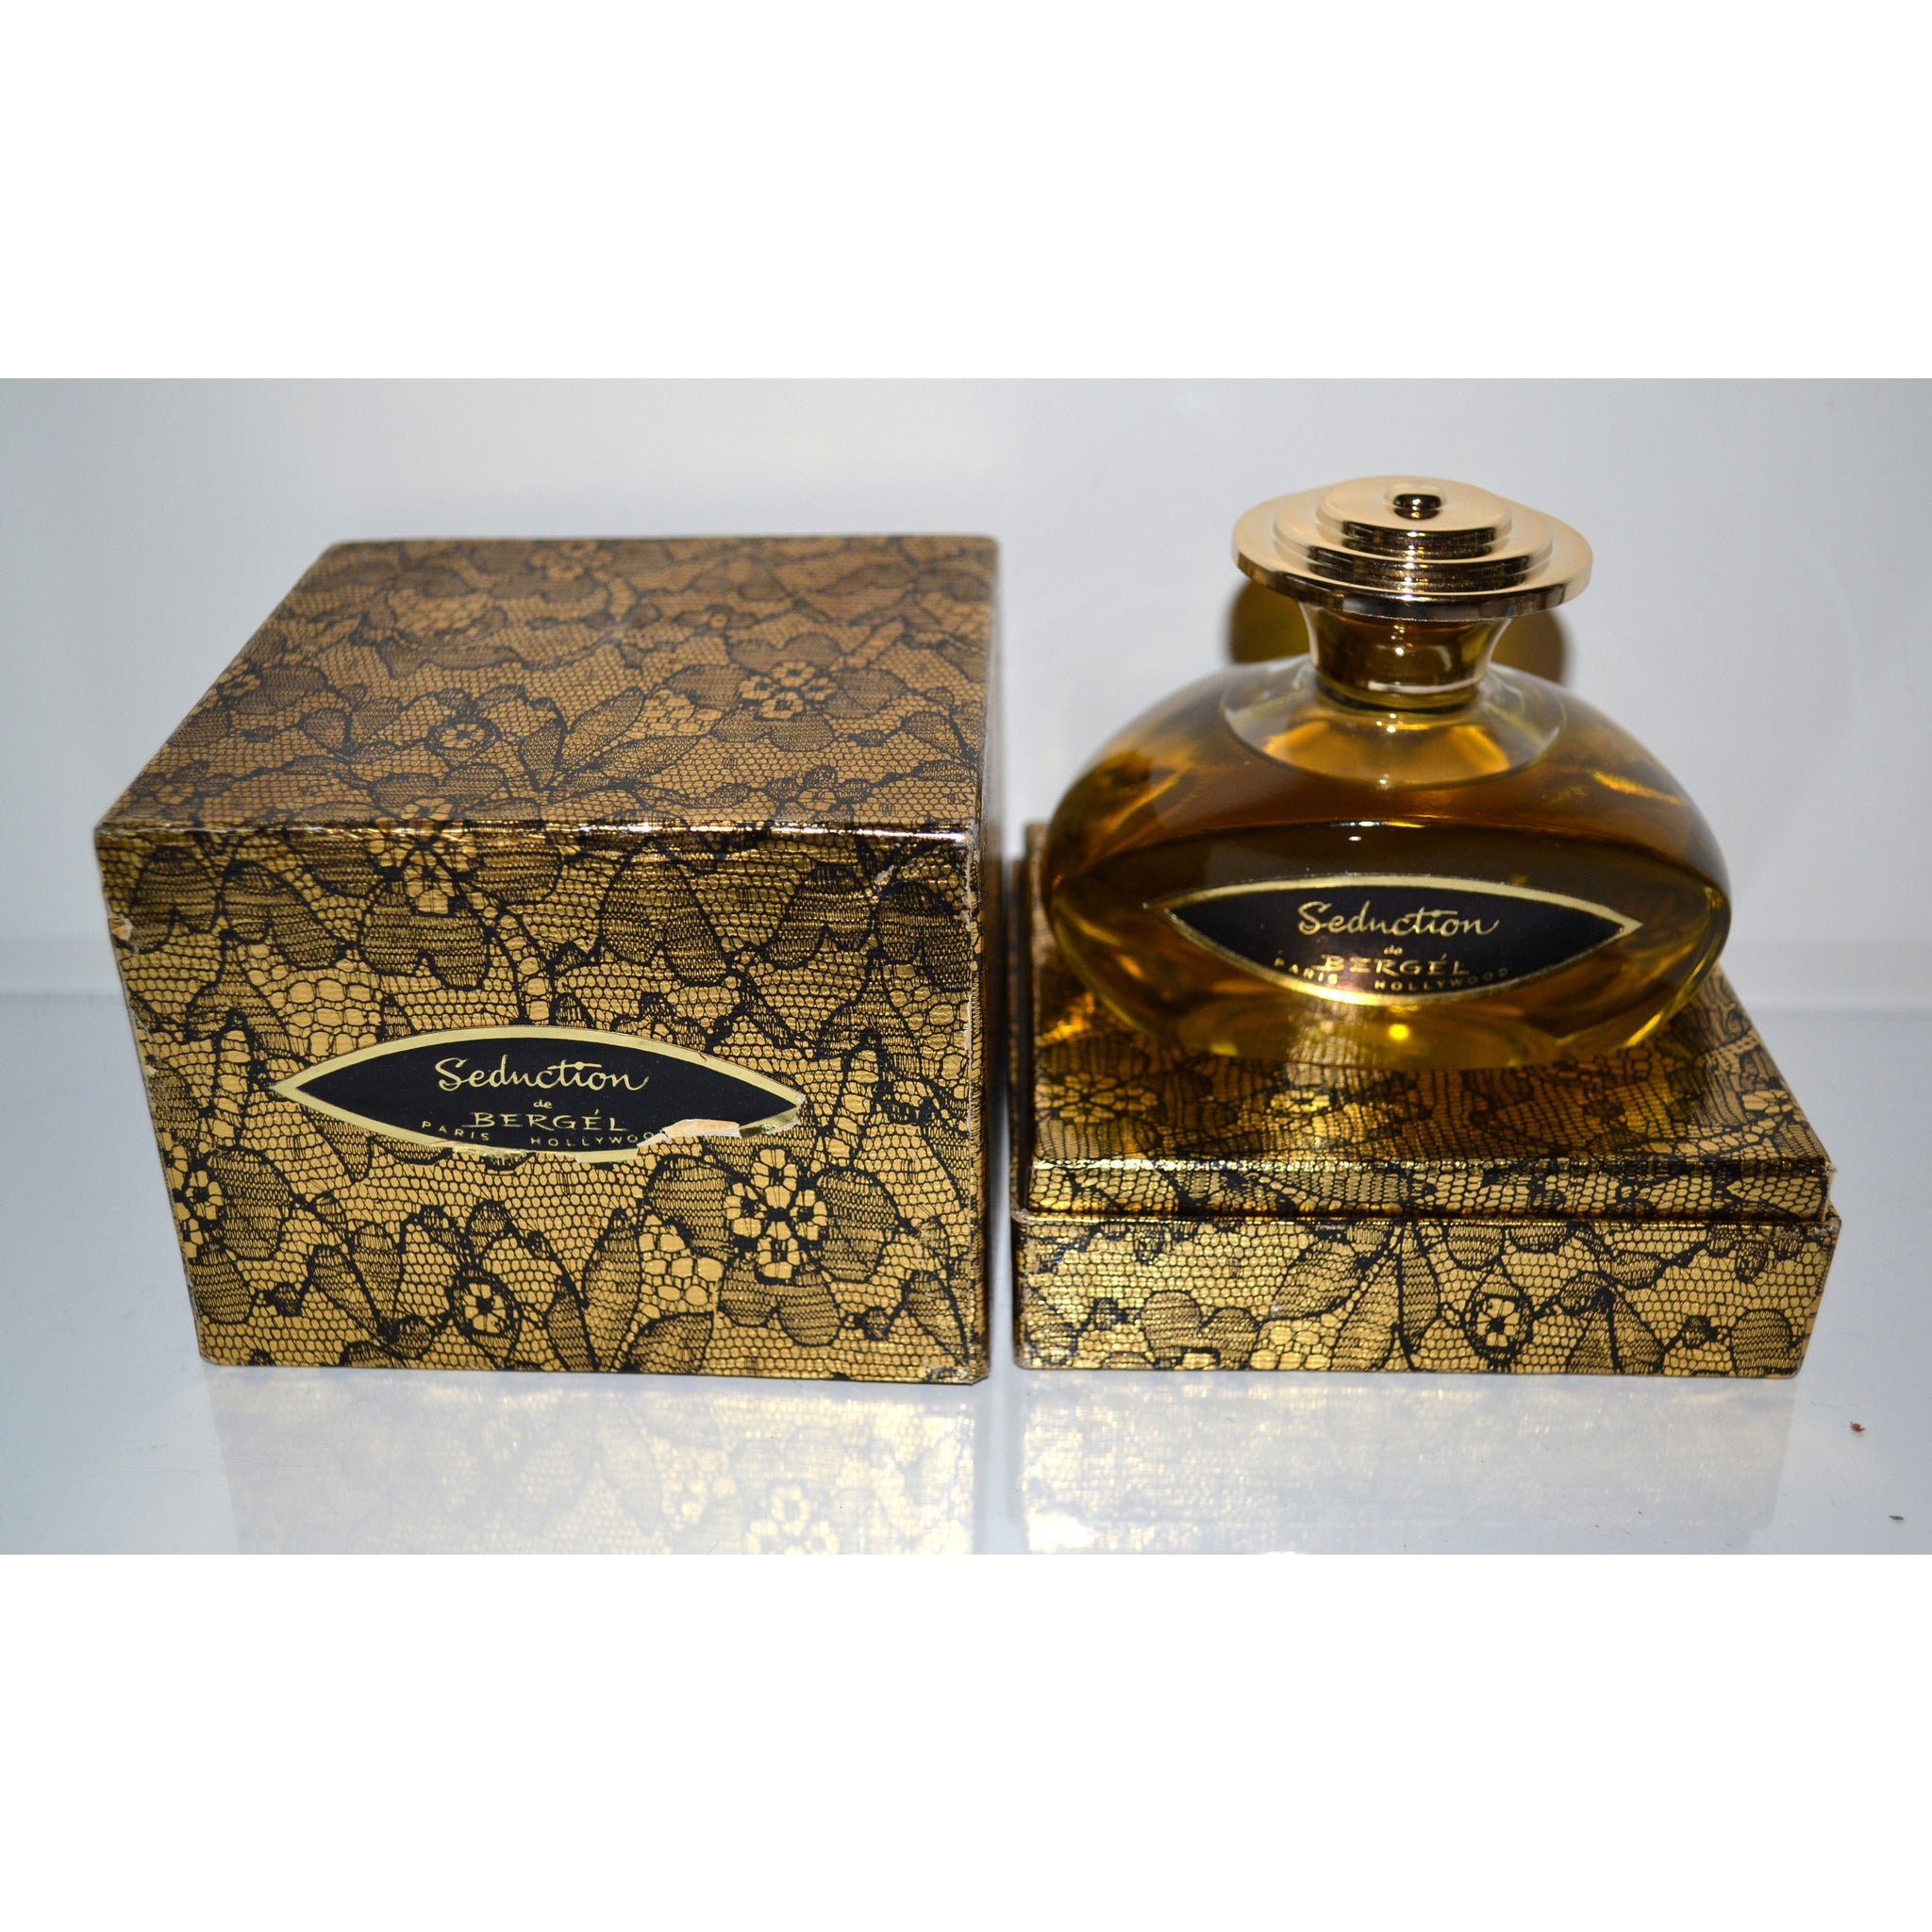 Vintage Seduction Eau De Parfum By Bergel